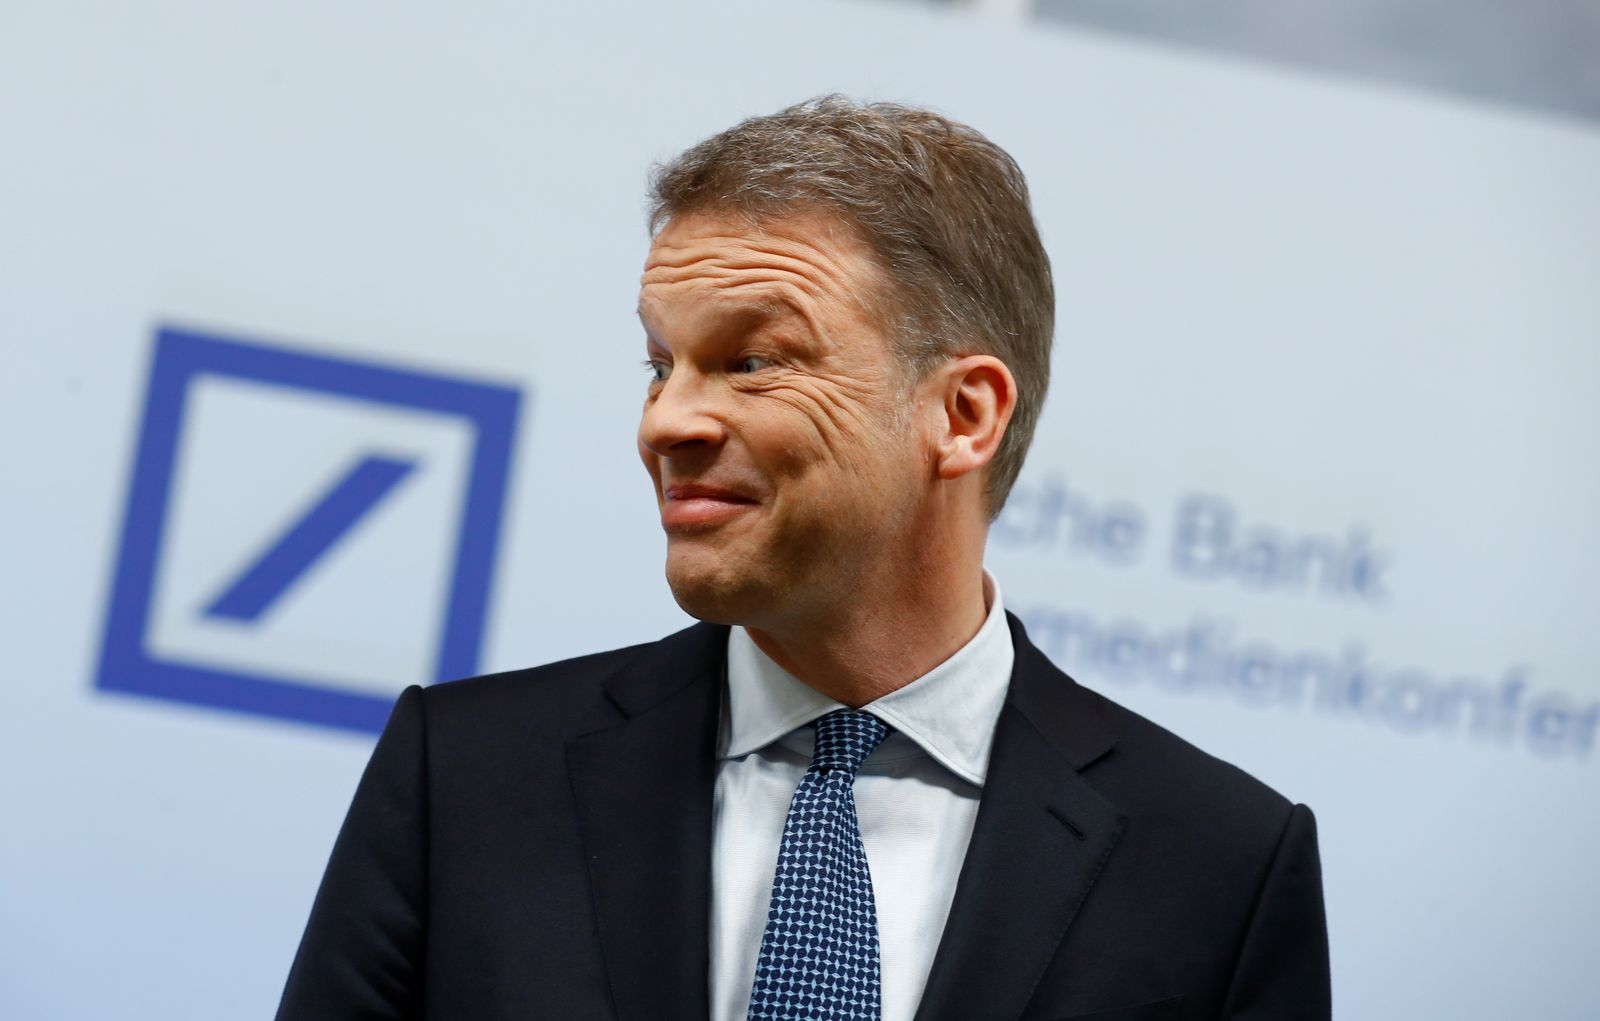 Christian Sewing, CEO of Deutsche Bank AG, addresses the media during the bank's annual news conference in Frankfurt